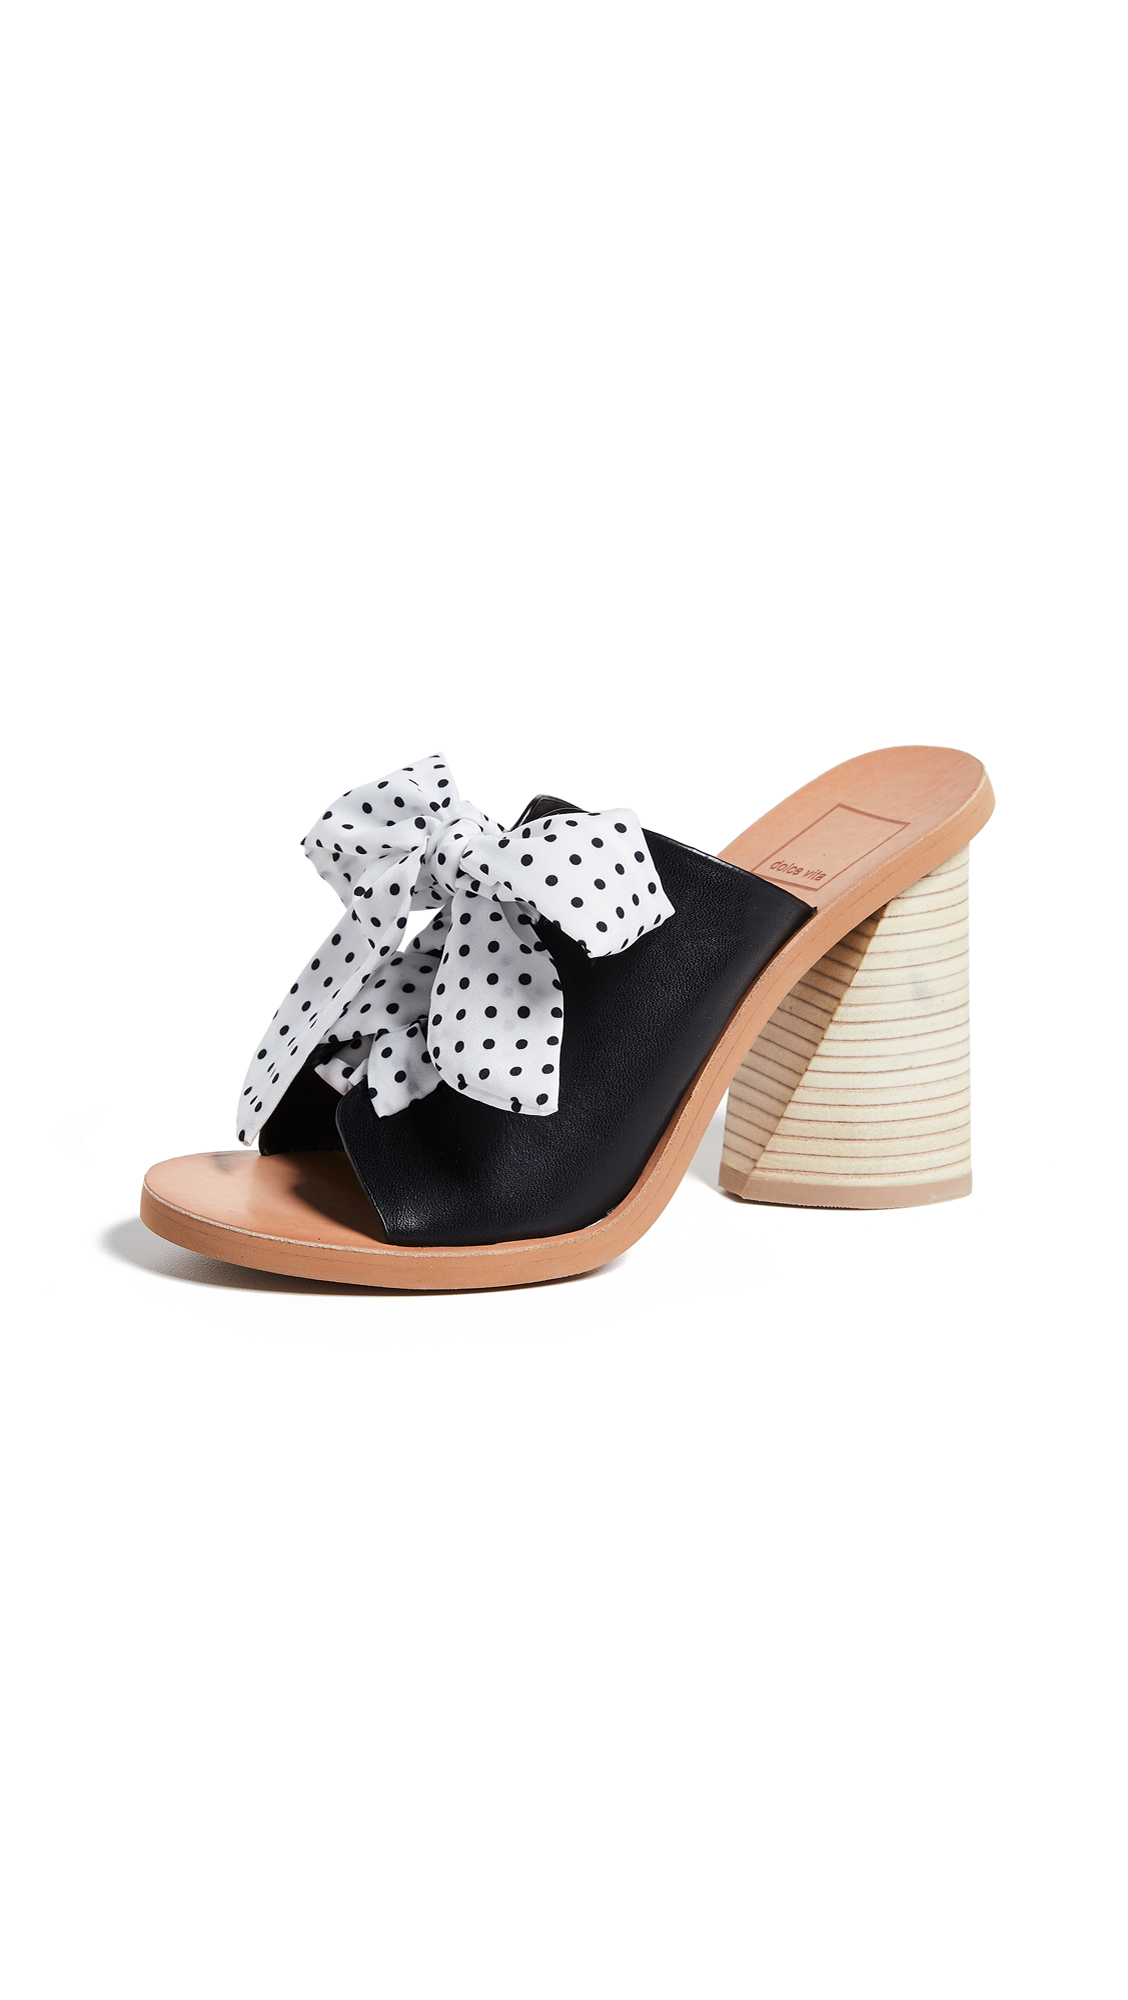 Dolce Vita Amber Block Heel Sandals - Black